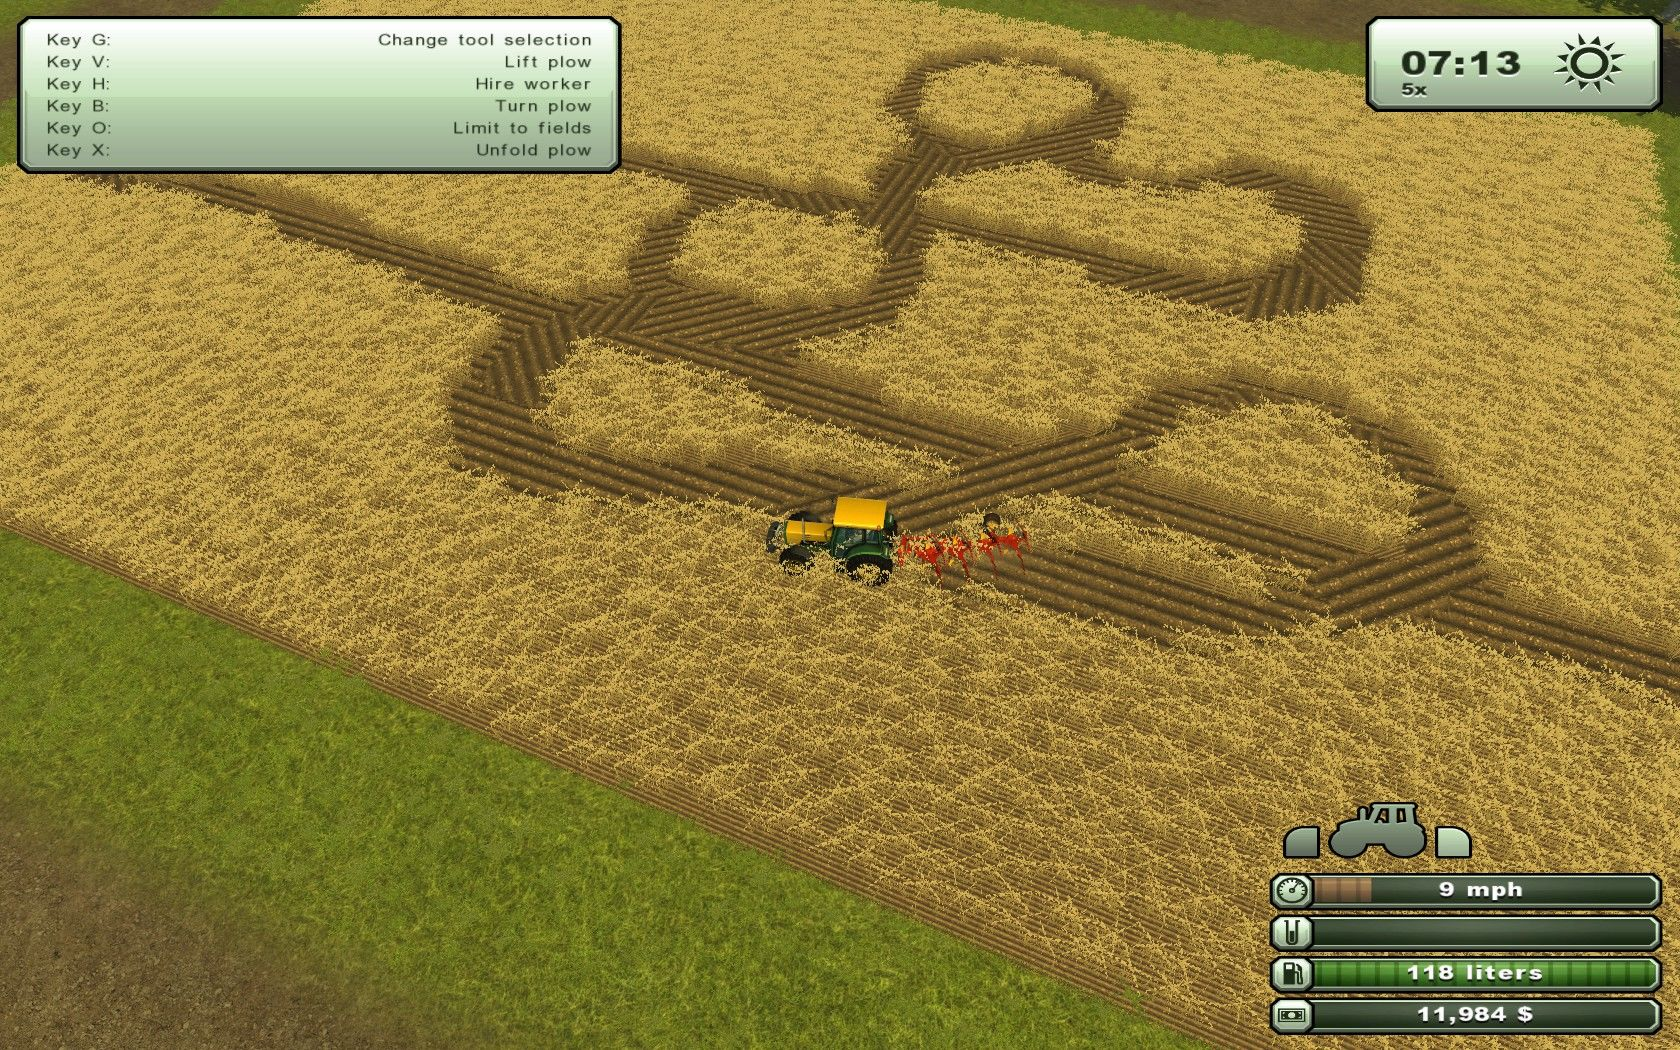 Farming Simulator 2013 Windows Be your own alien! Make crop circles!